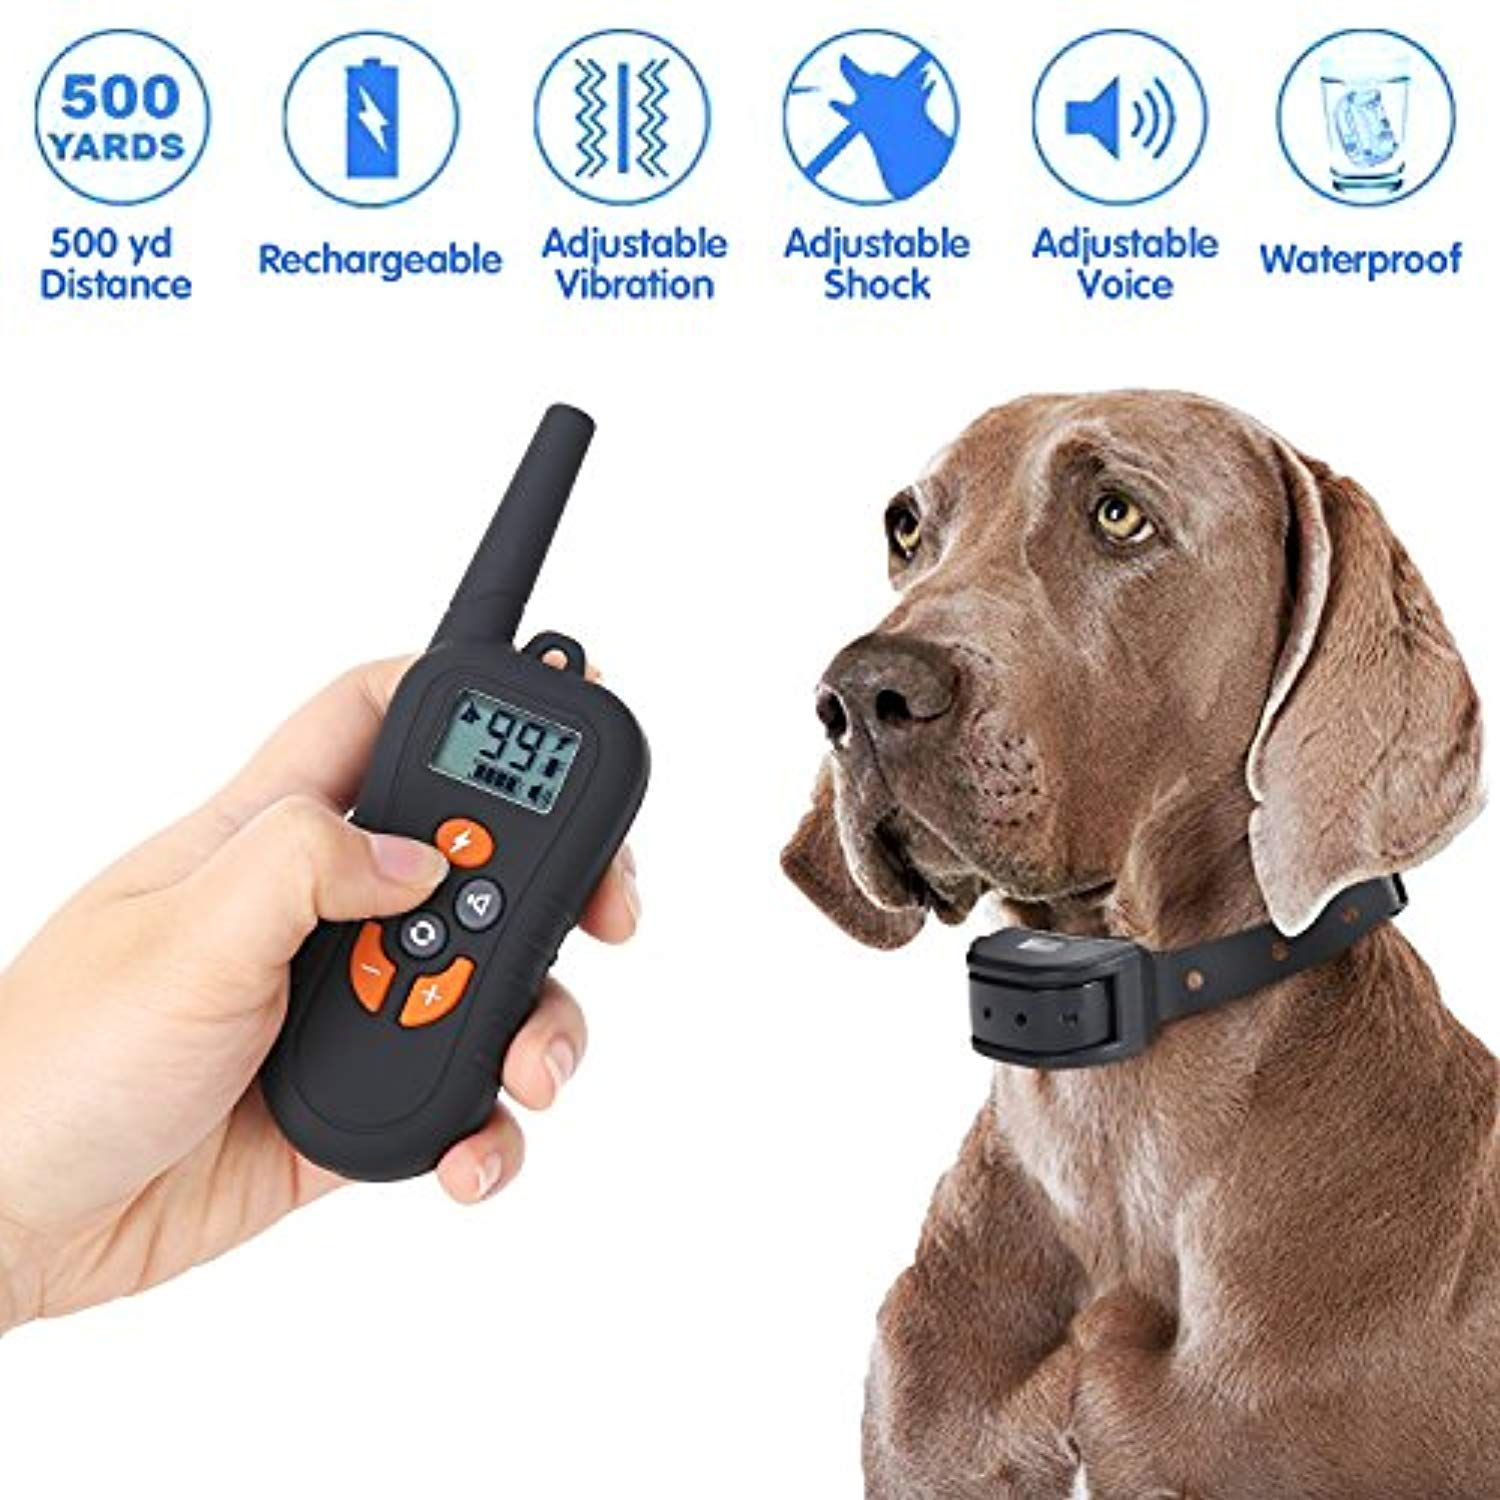 Yesurprise Dog Training Collar Remote Pet Control Device